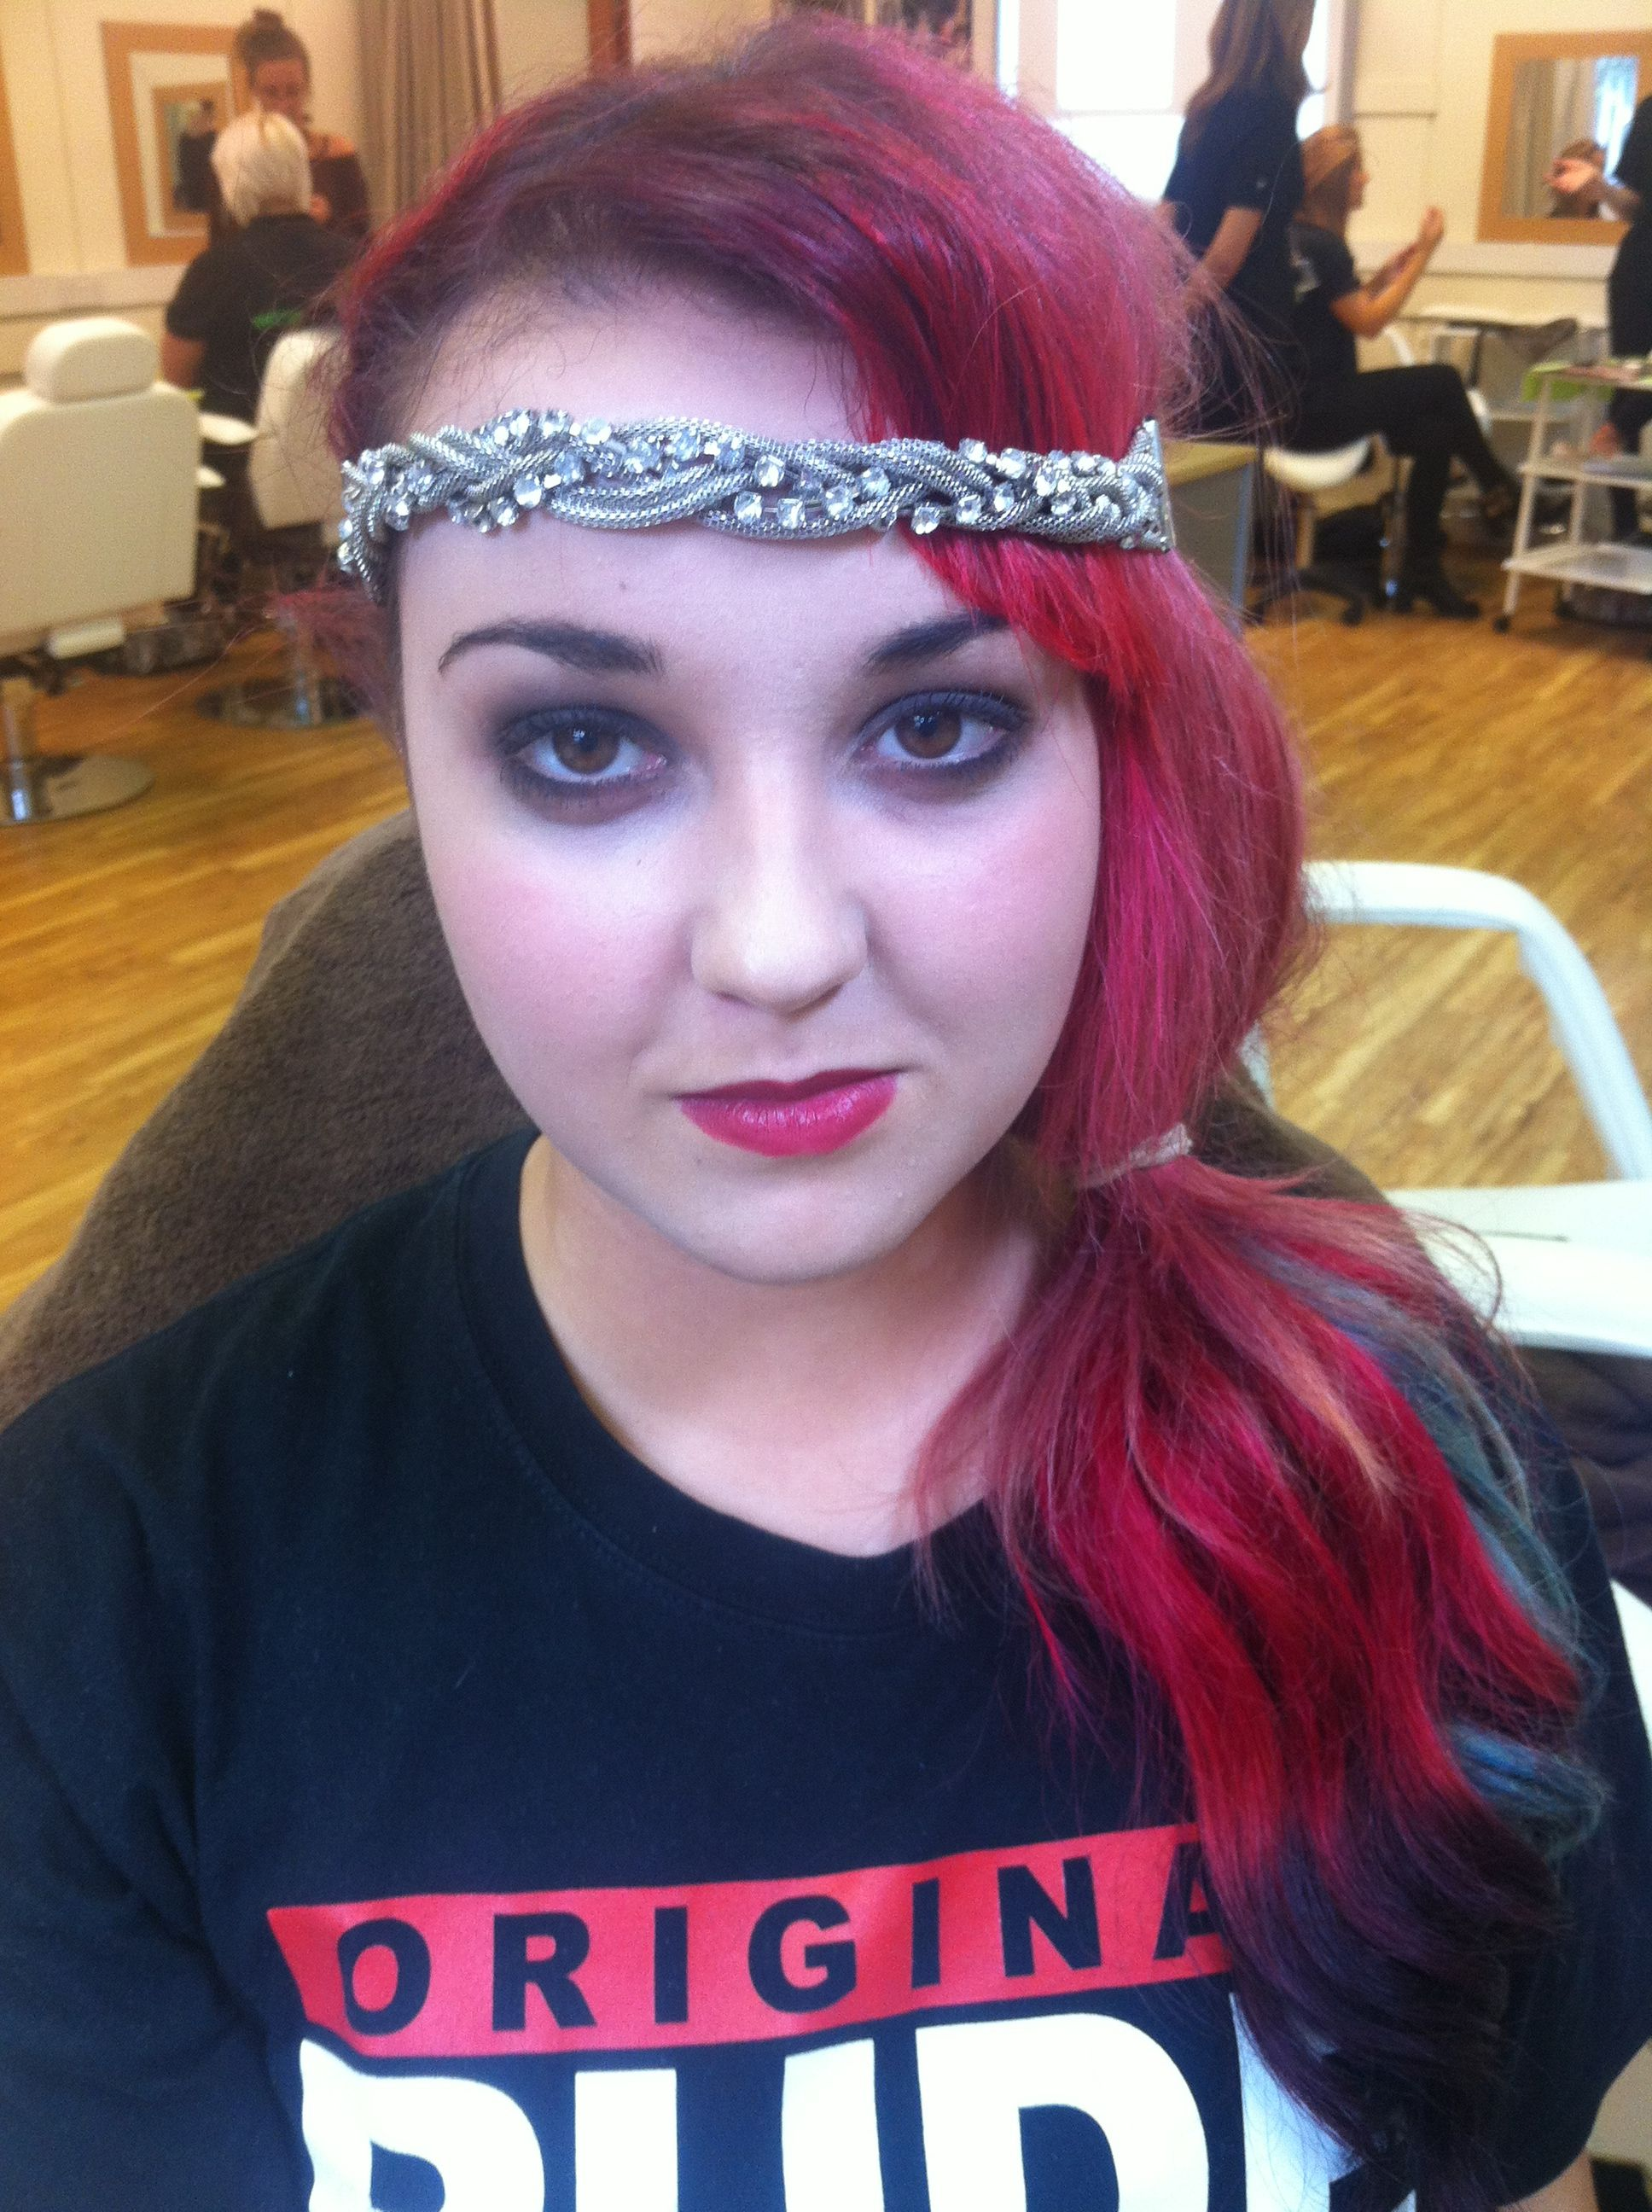 1920's Flapper Girl Inspired Look with smokey eyes and red lip